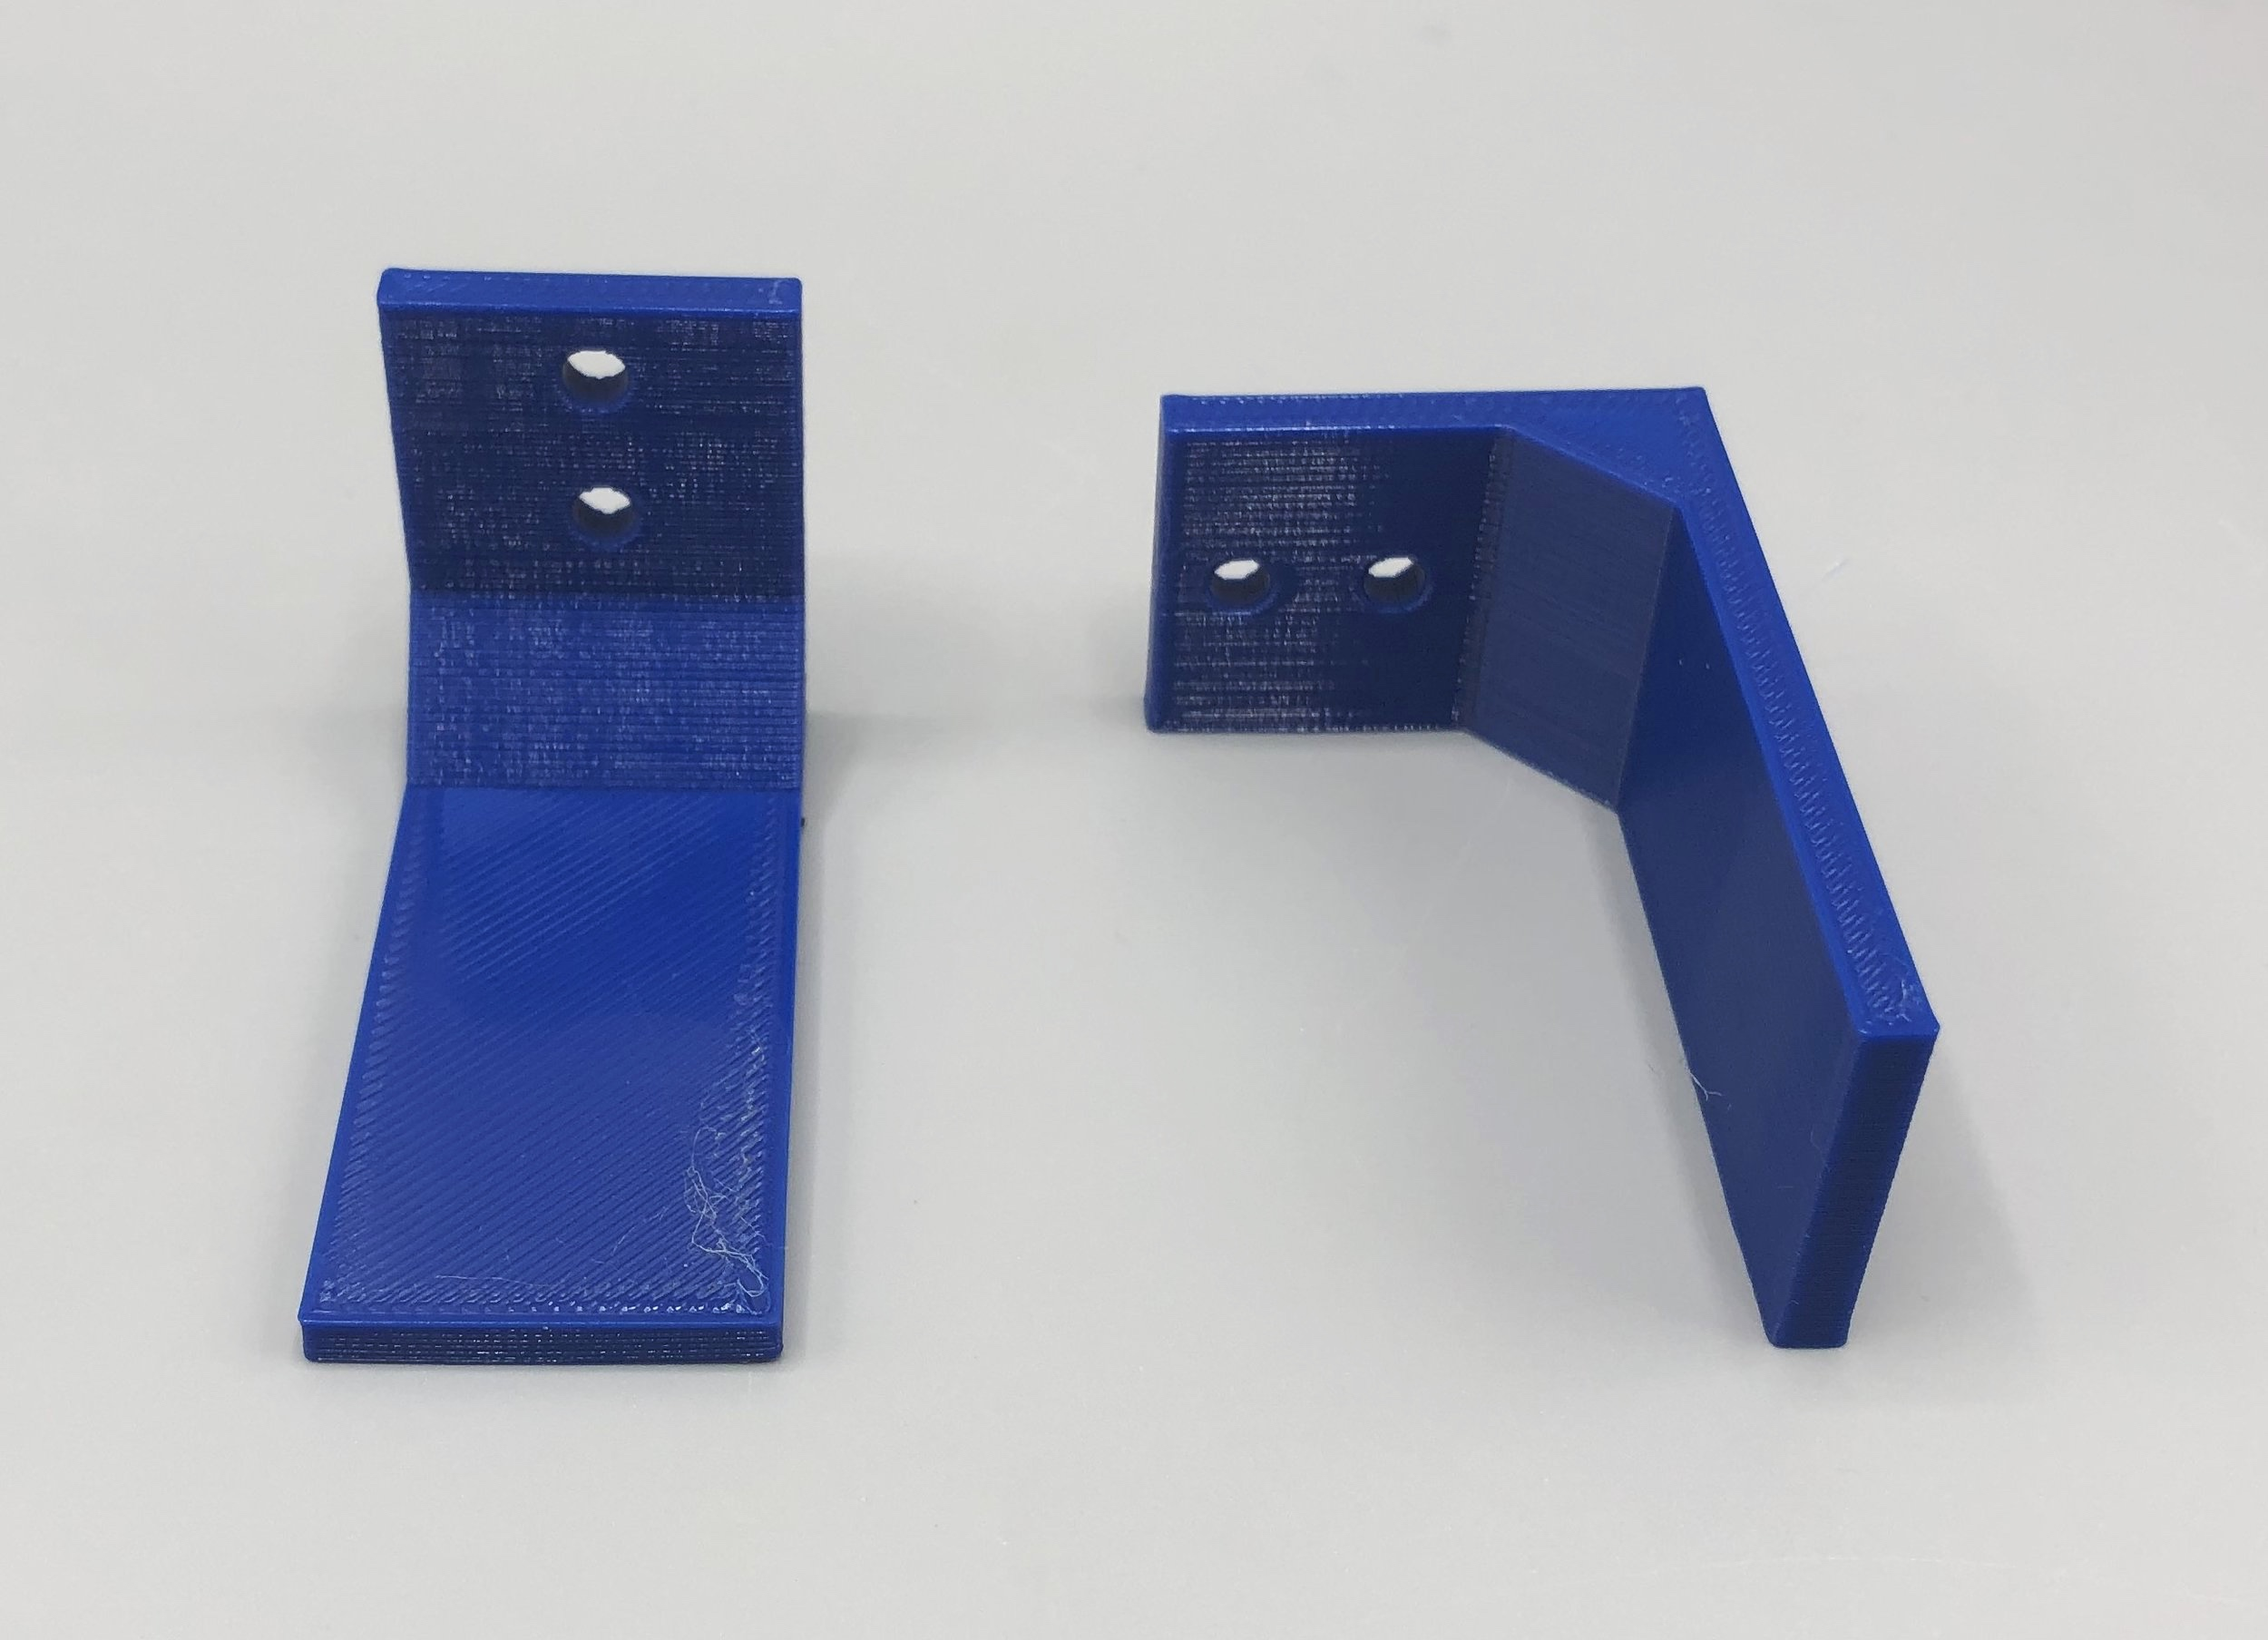 We printed the same shelf bracket in two different orientations. Which of these do you think will perform better?